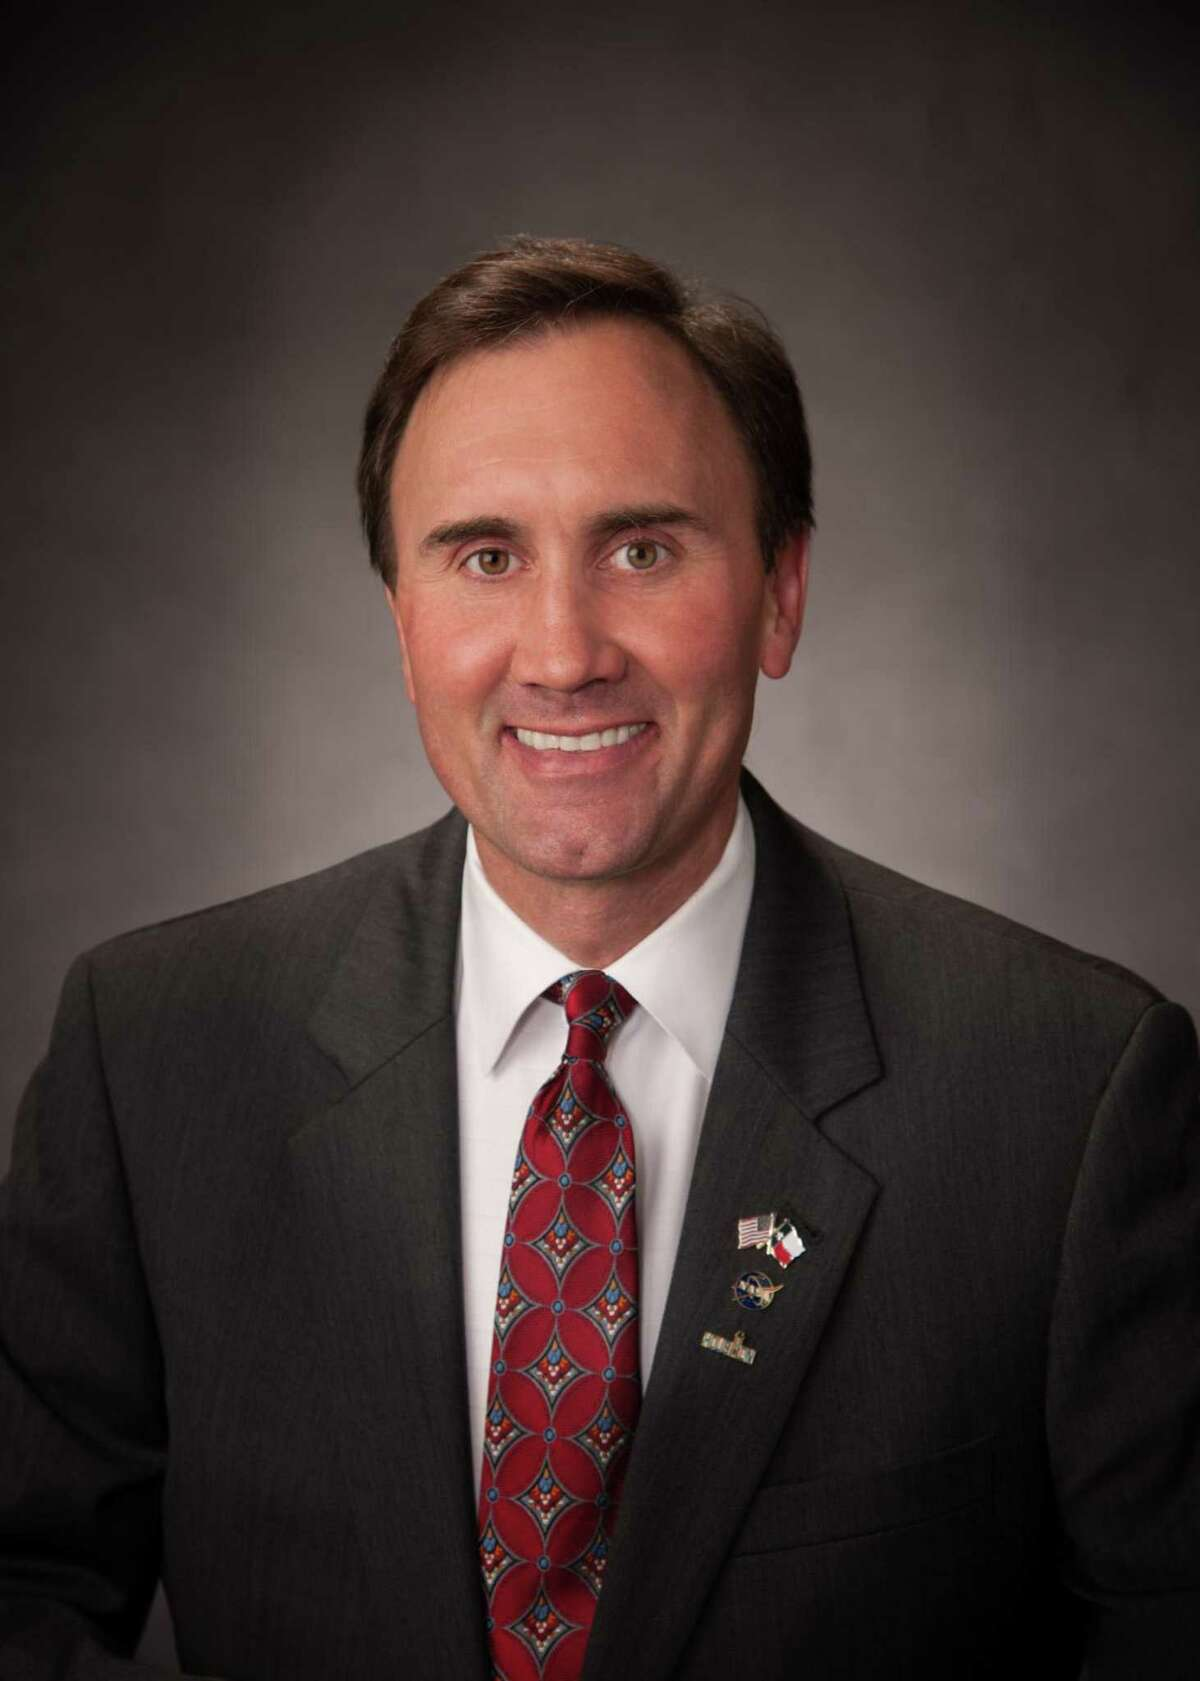 U.S. Rep. Pete Olson is retiring from his position to spend more time with his family. Olson was first elected to the District 22 seat in 2009.